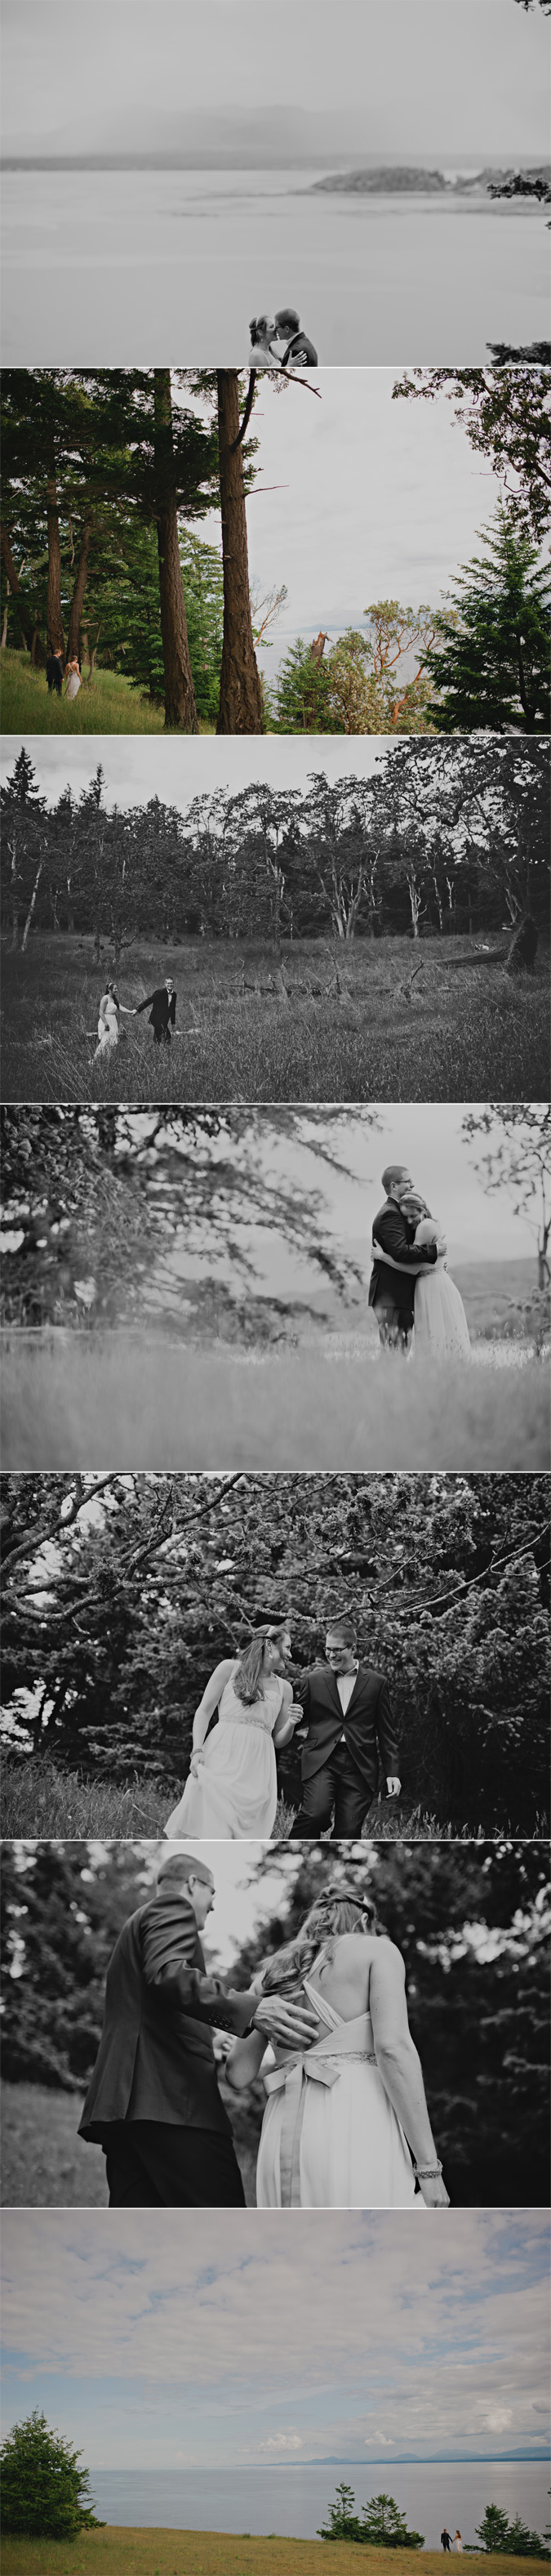 intimate portraits with a bride & groom on the cliffs of helliwell park, hornby island, bc